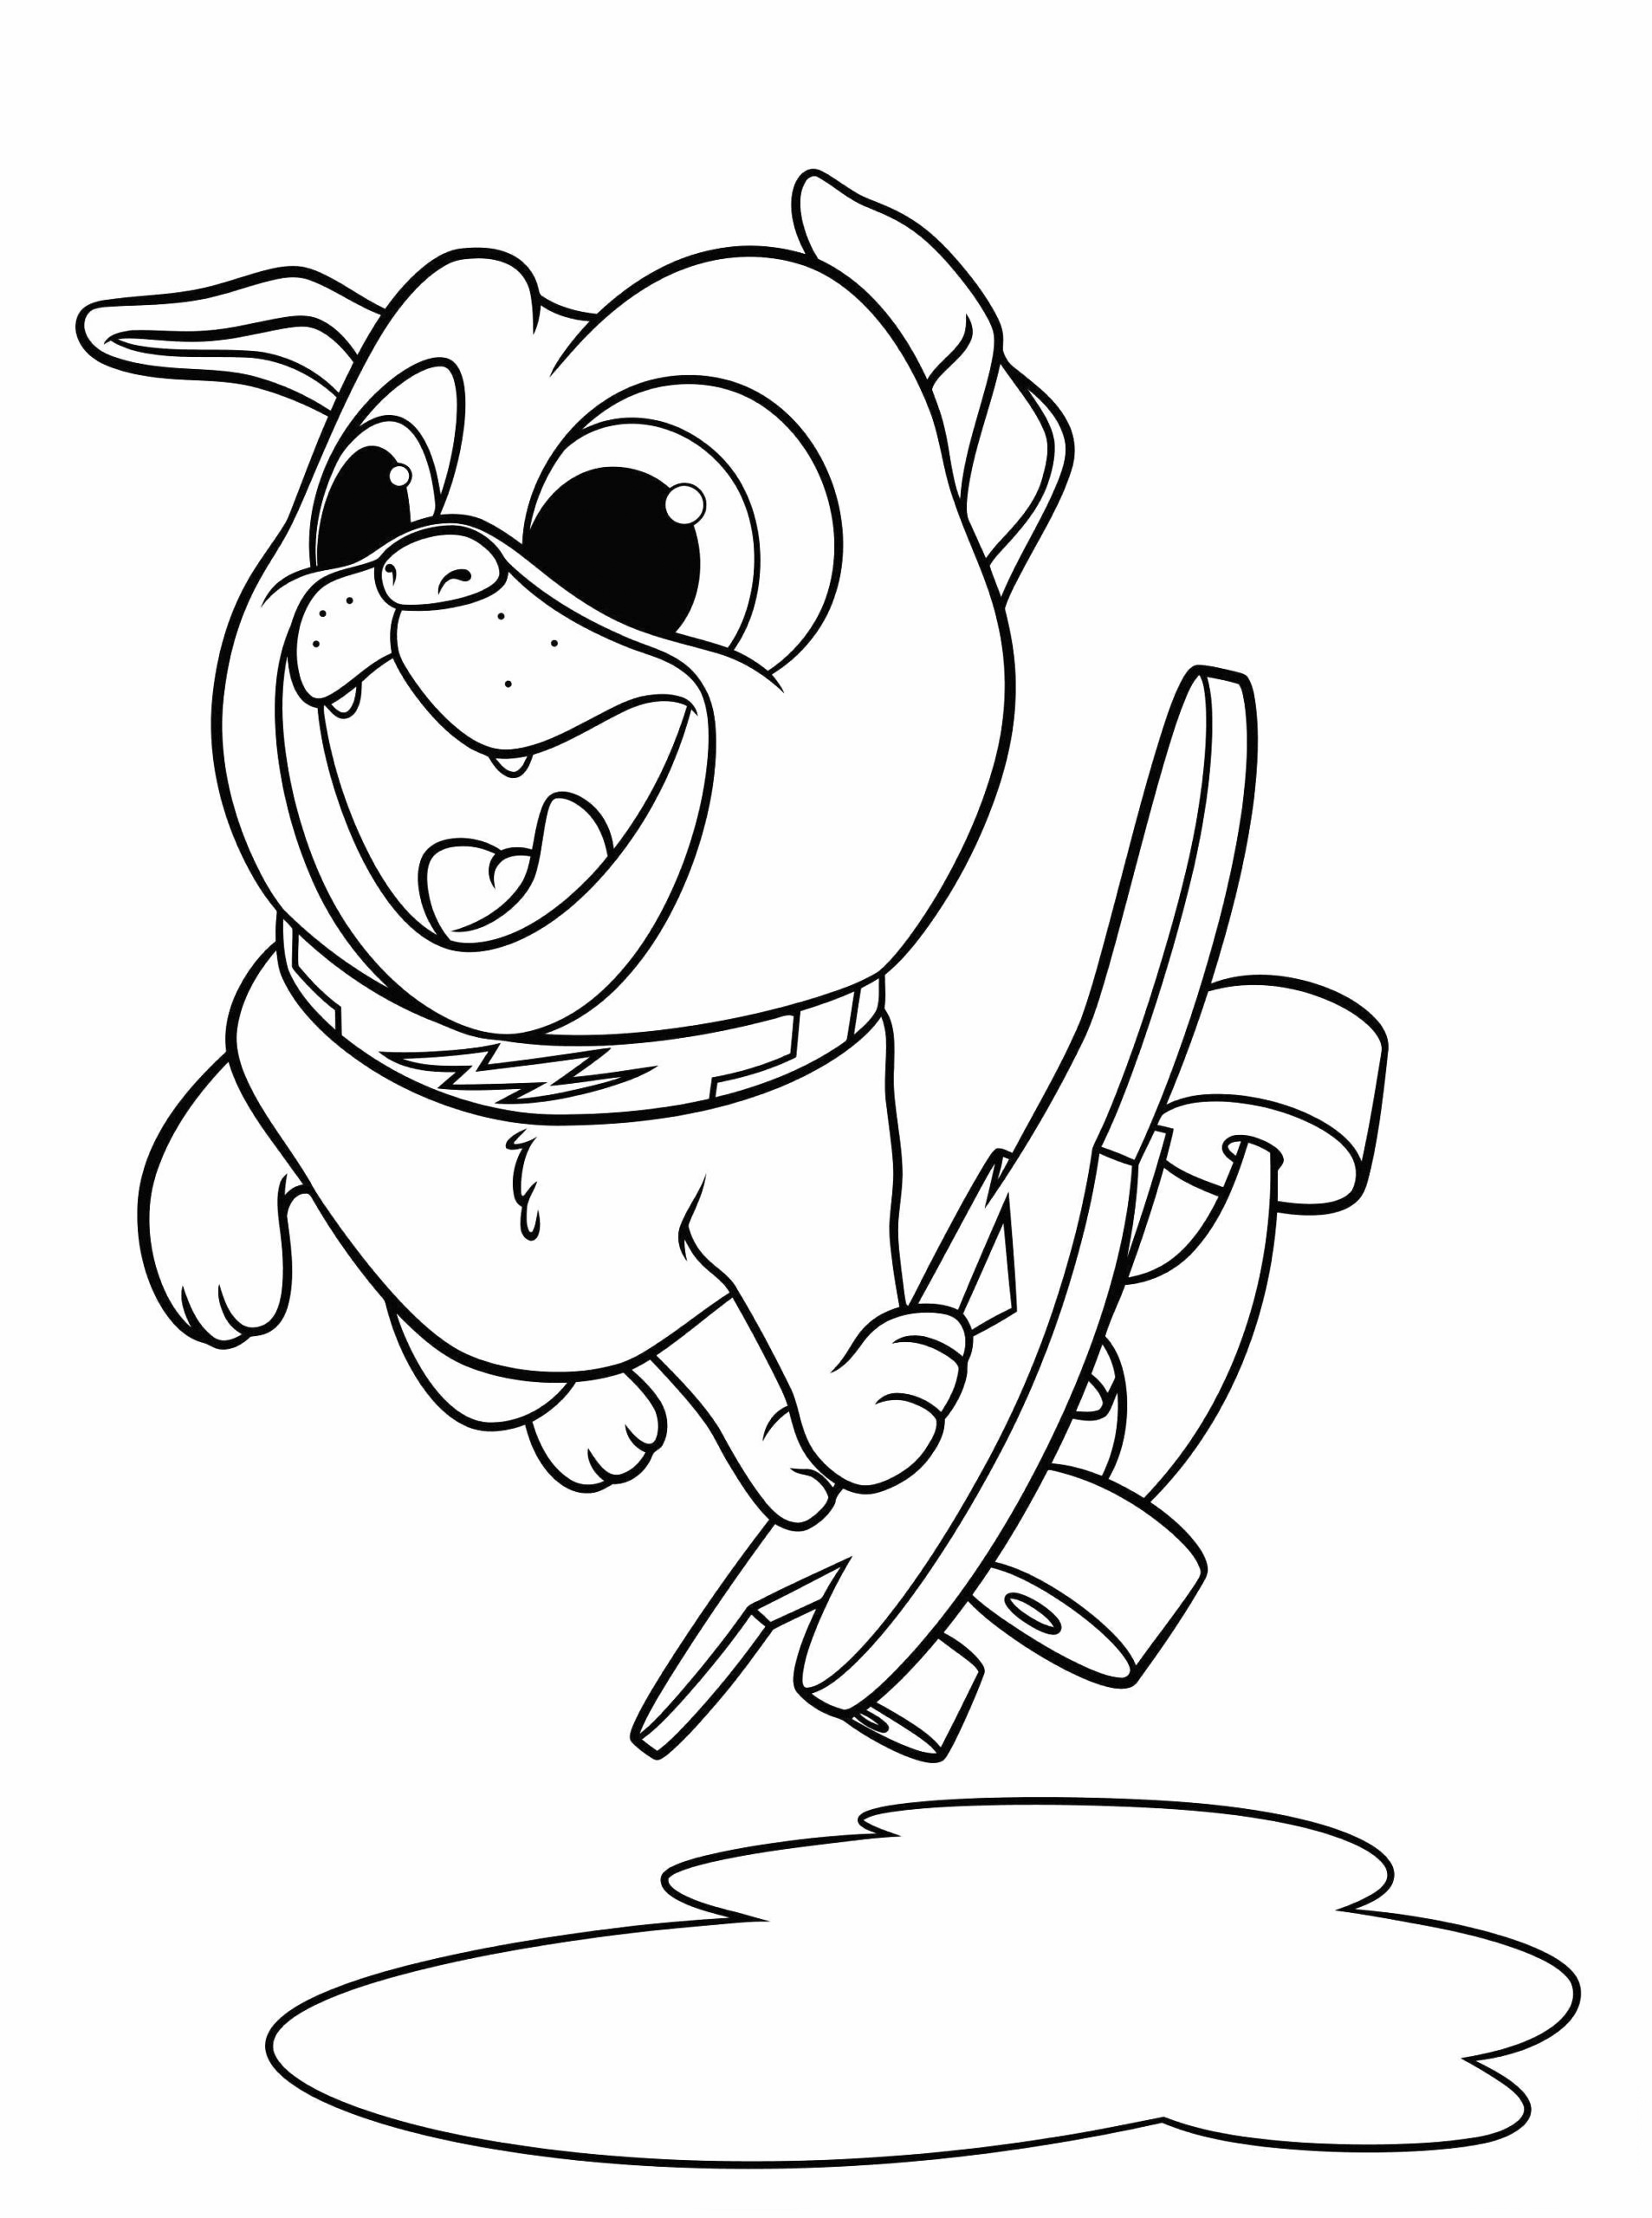 Puppy Skateboarding Coloring Page